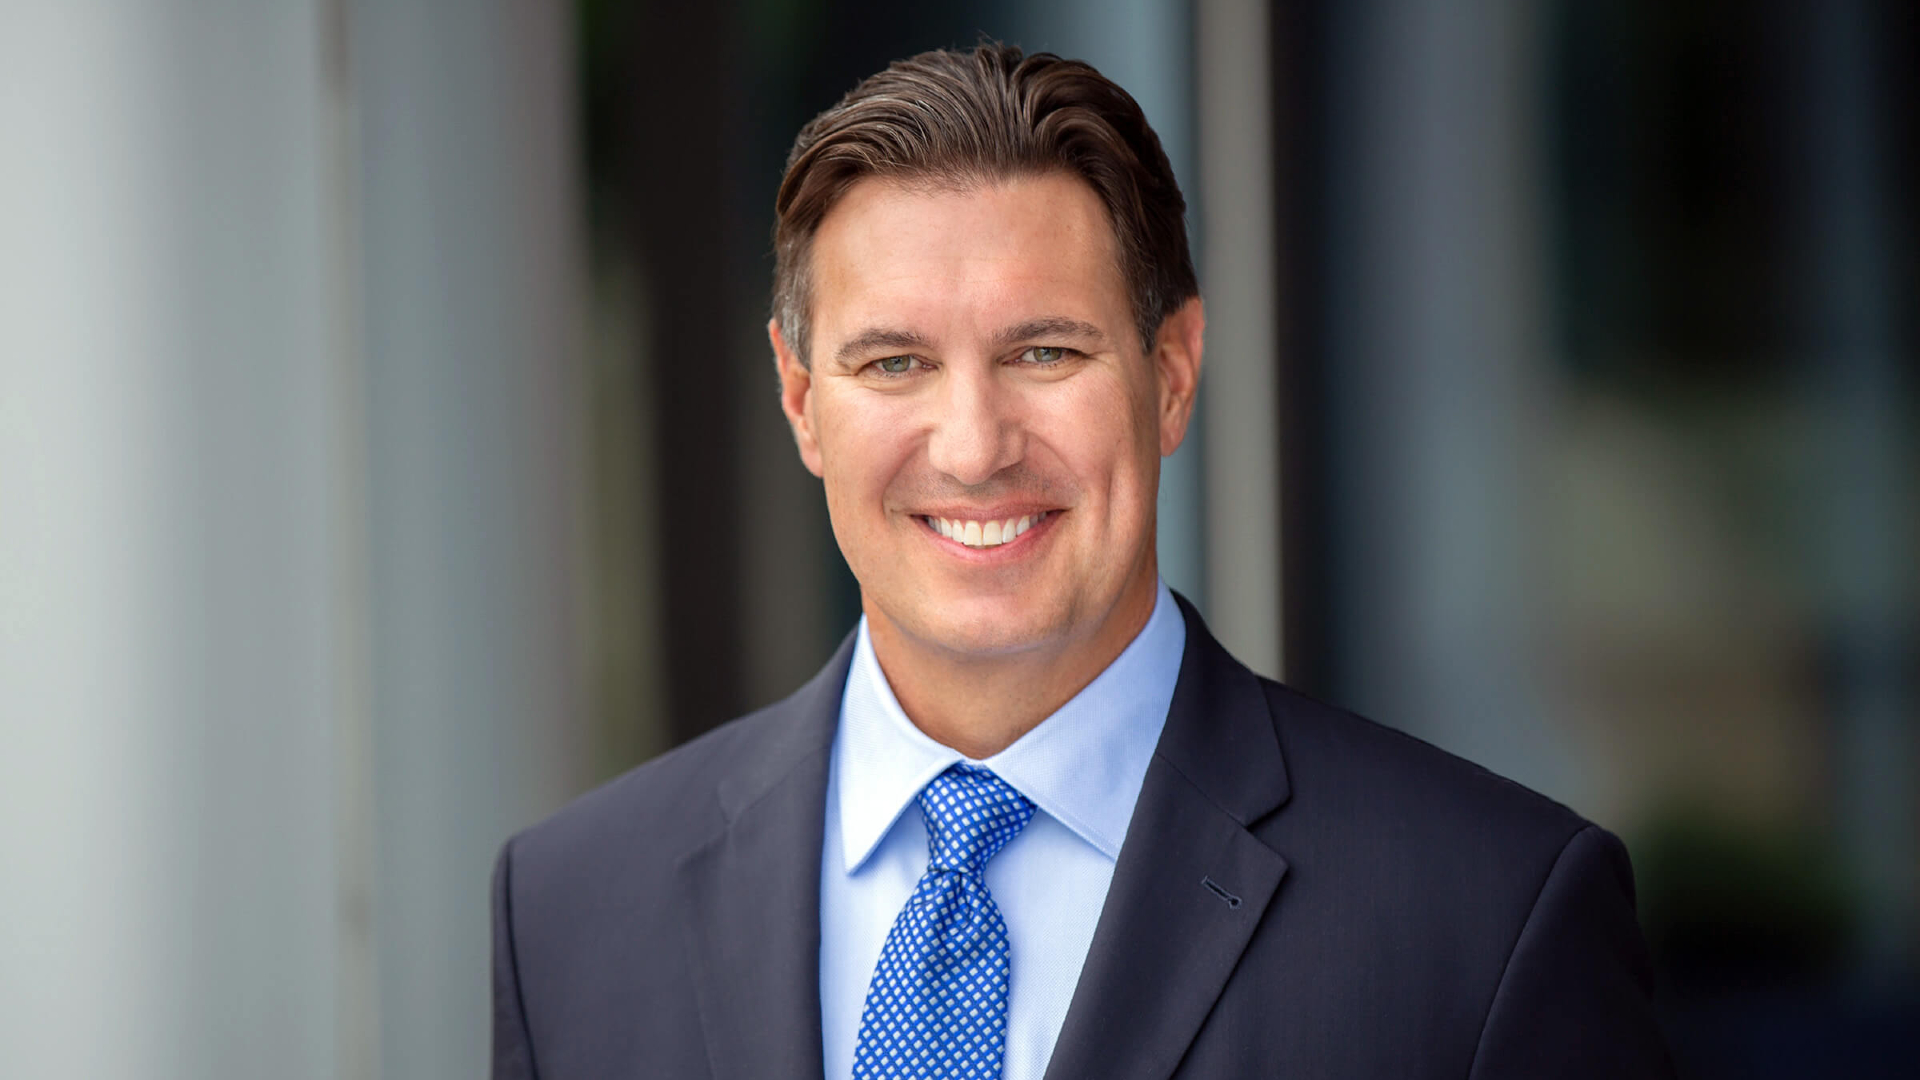 A top leader at Atrium Health is being recognized as one of the health industry's top executives. Dr. Scott Rissmiller, executive vice president and chief physician executive for Atrium Health, has been named one of Modern Healthcare's Top 50 Most Influential Clinical Executives of 2021.